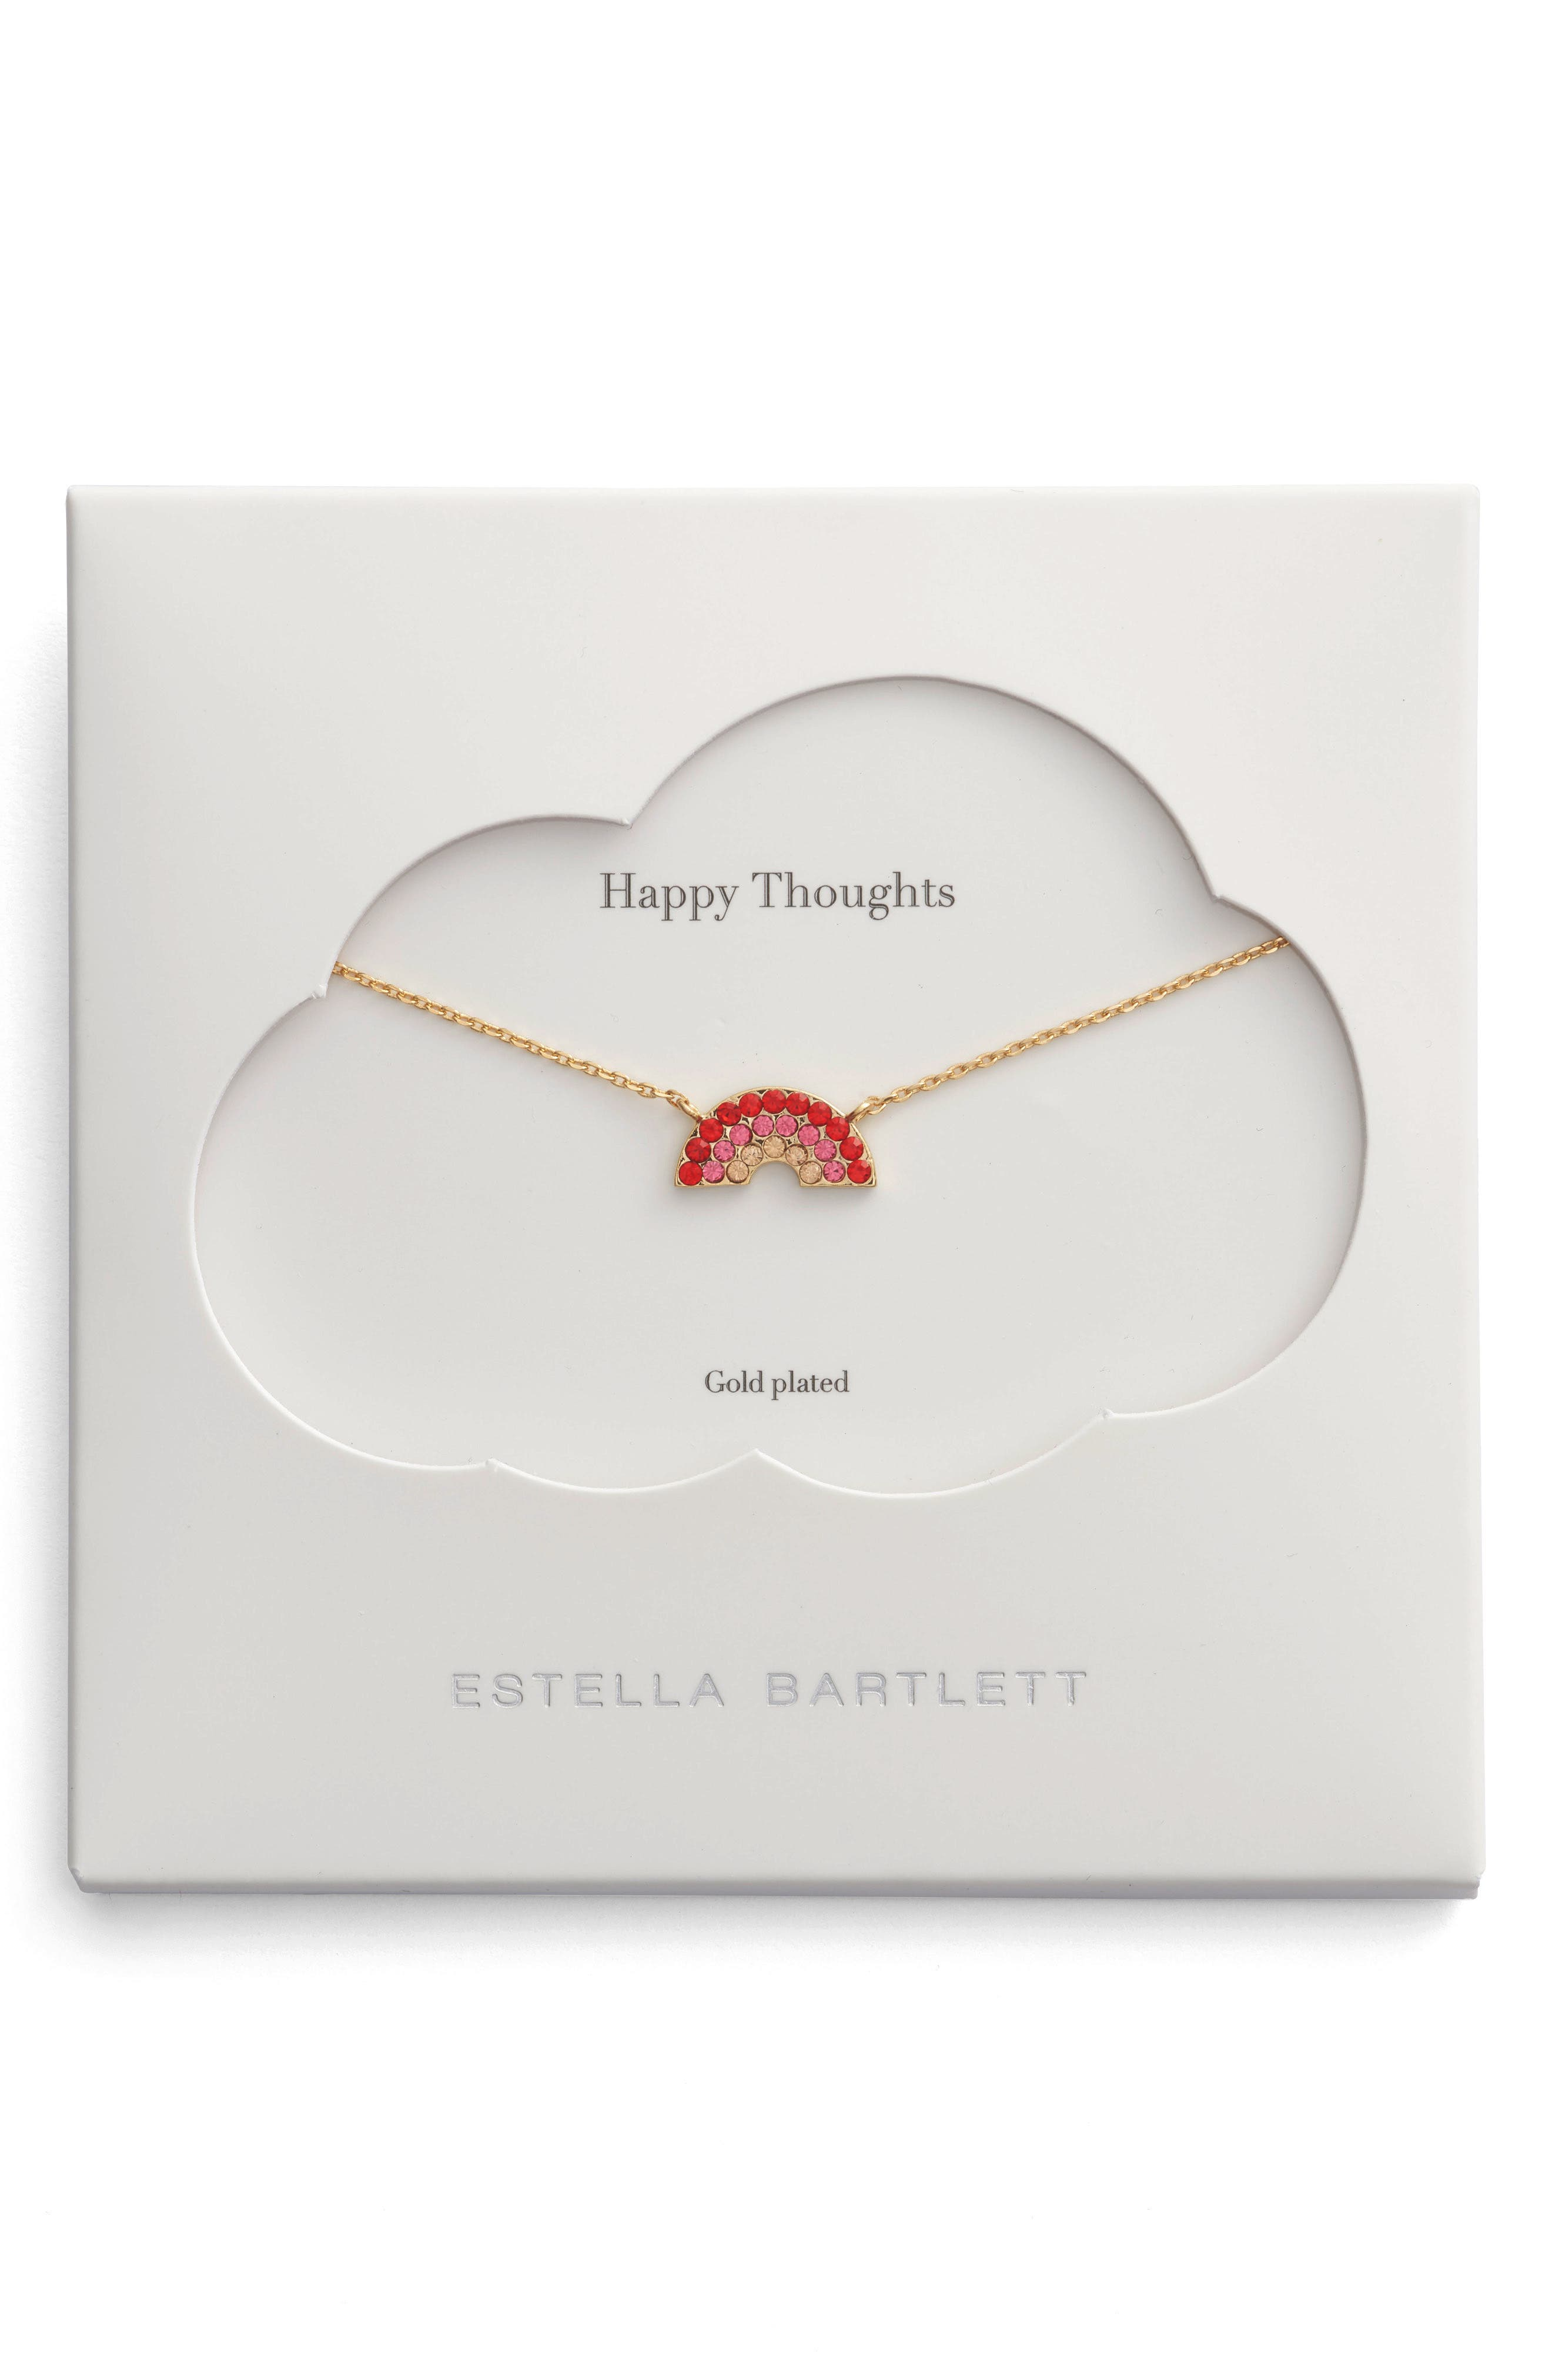 Happy Thoughts Rainbow Necklace,                         Main,                         color, Gold